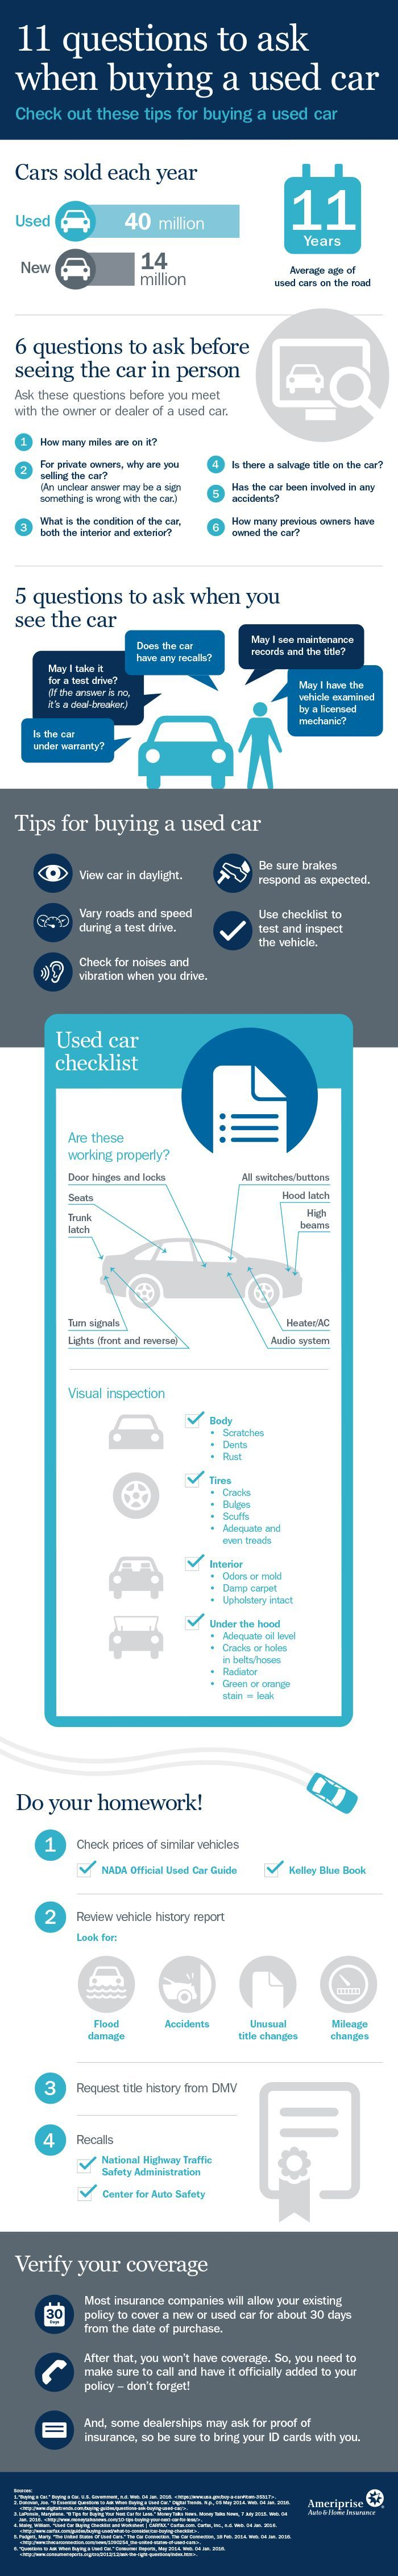 Questions To Ask When Buying A Used Car >> This Infographic Explains The 11 Questions To Ask When